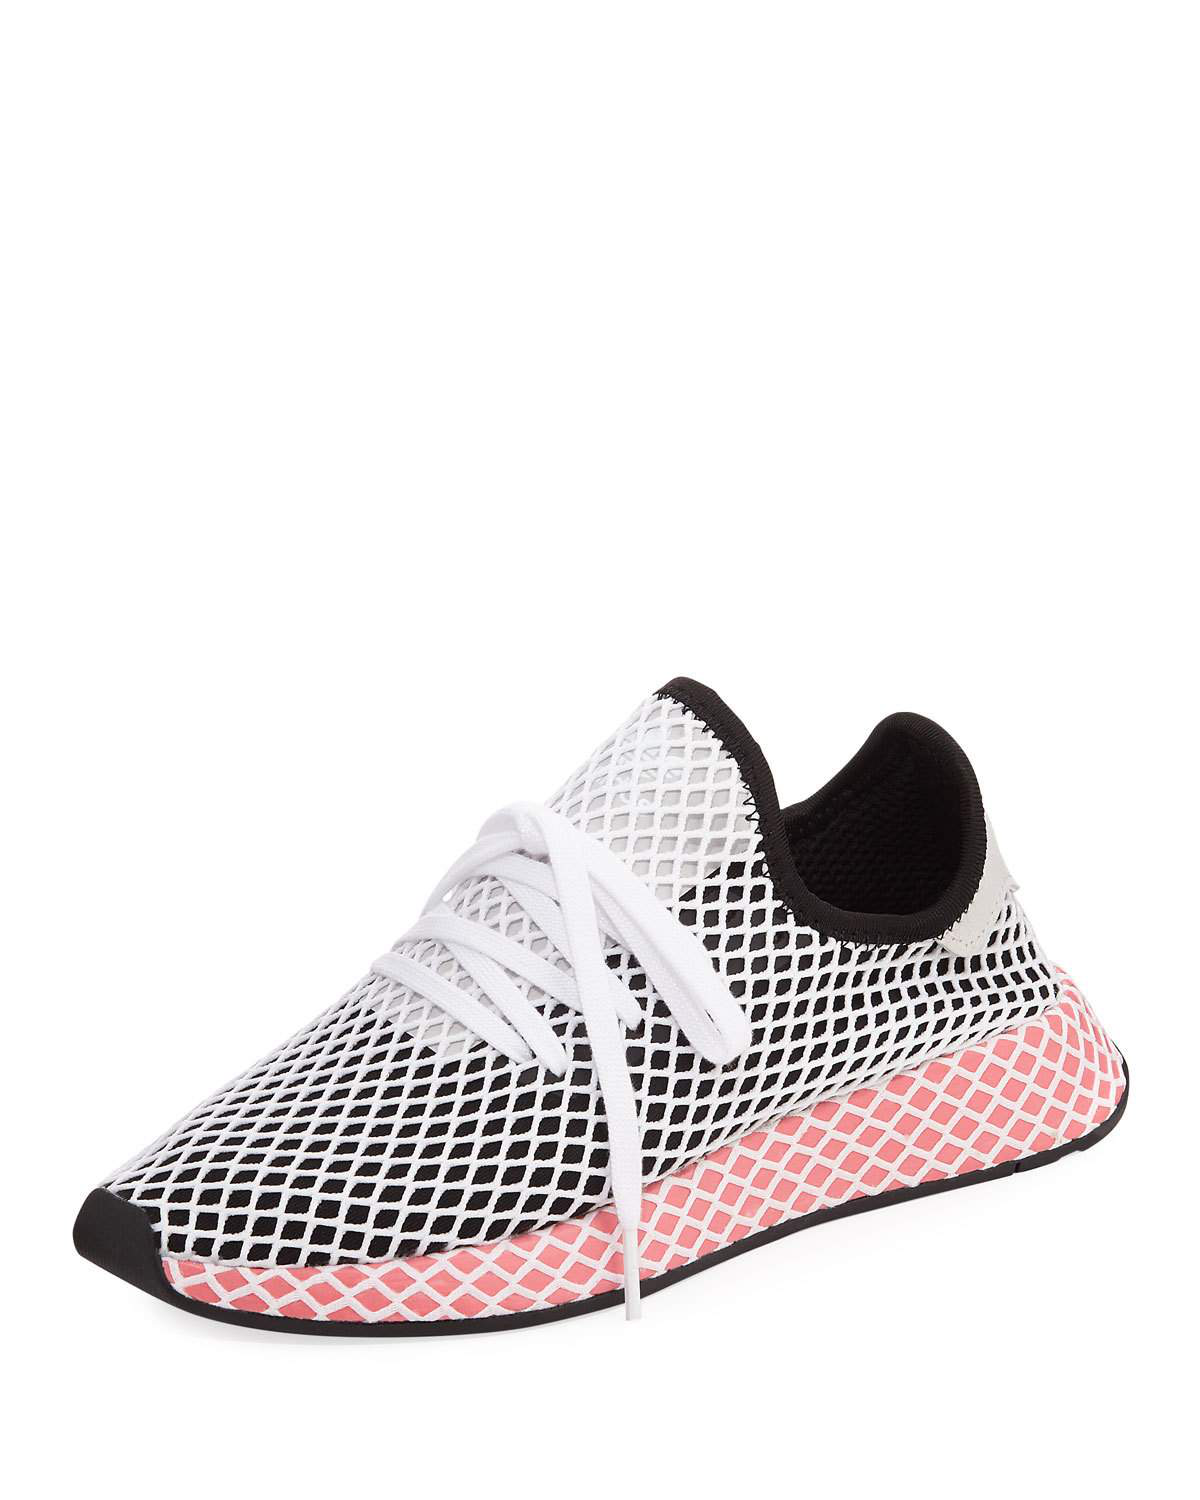 new concept 71d6a 58b98 Adidas Originals Sneakers Adidas Deerupt Runner W Sneakers In Knit And Mesh  Stretch Net Effect In